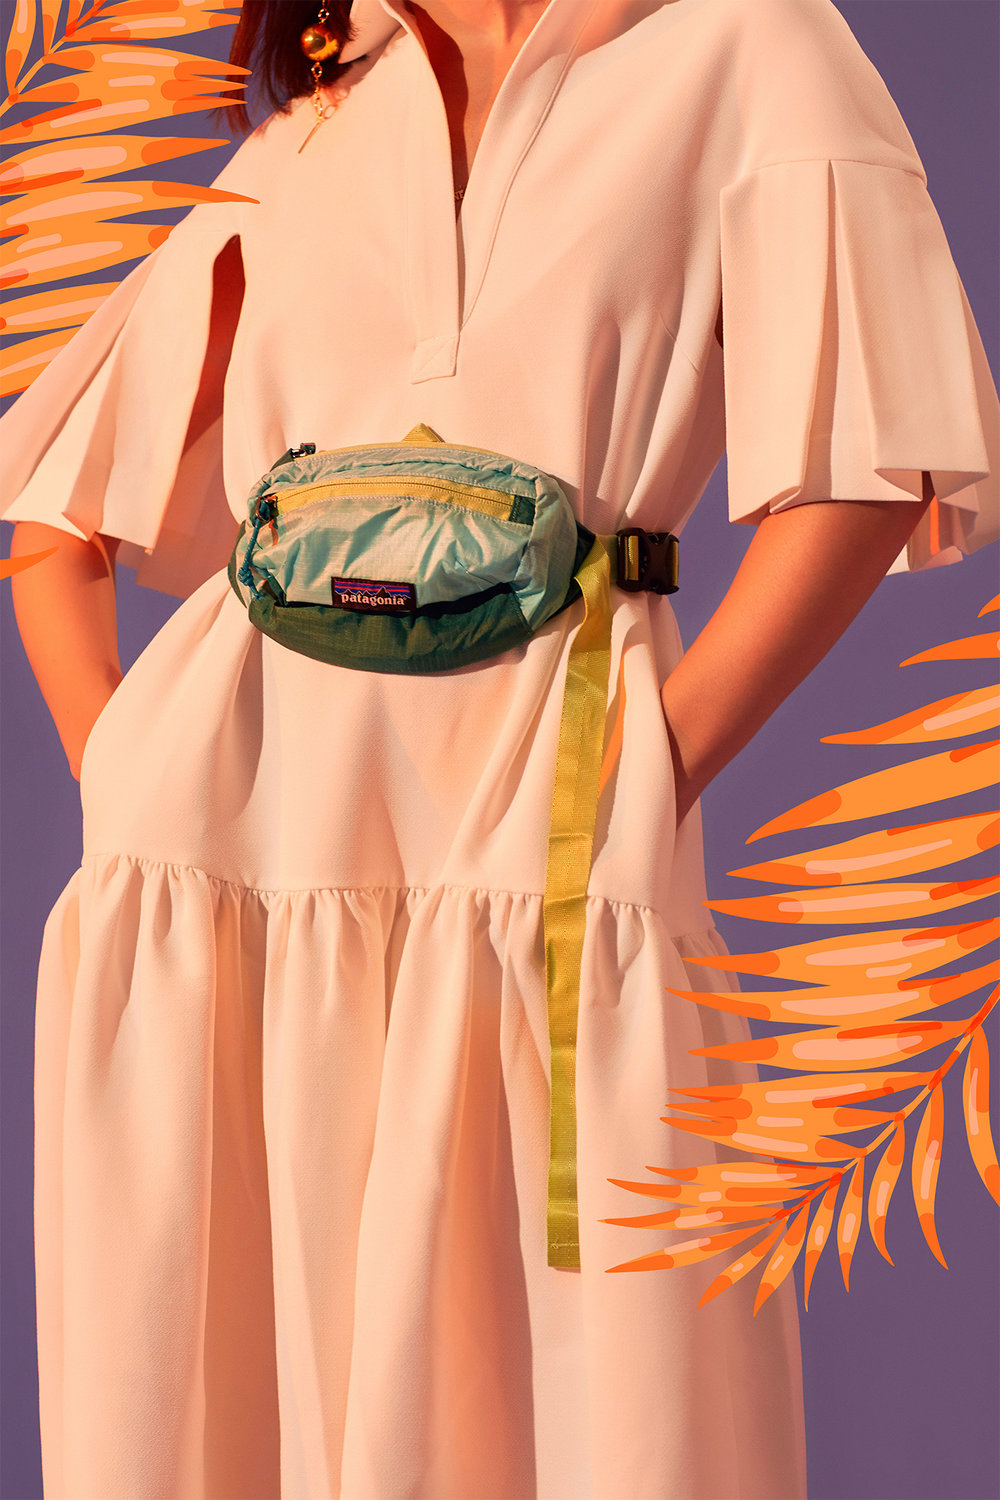 RNY_Sudit_Anna_Fanny_Packs_Are_Fashion's_Summer_Obsession_Slides_051017-07.jpg